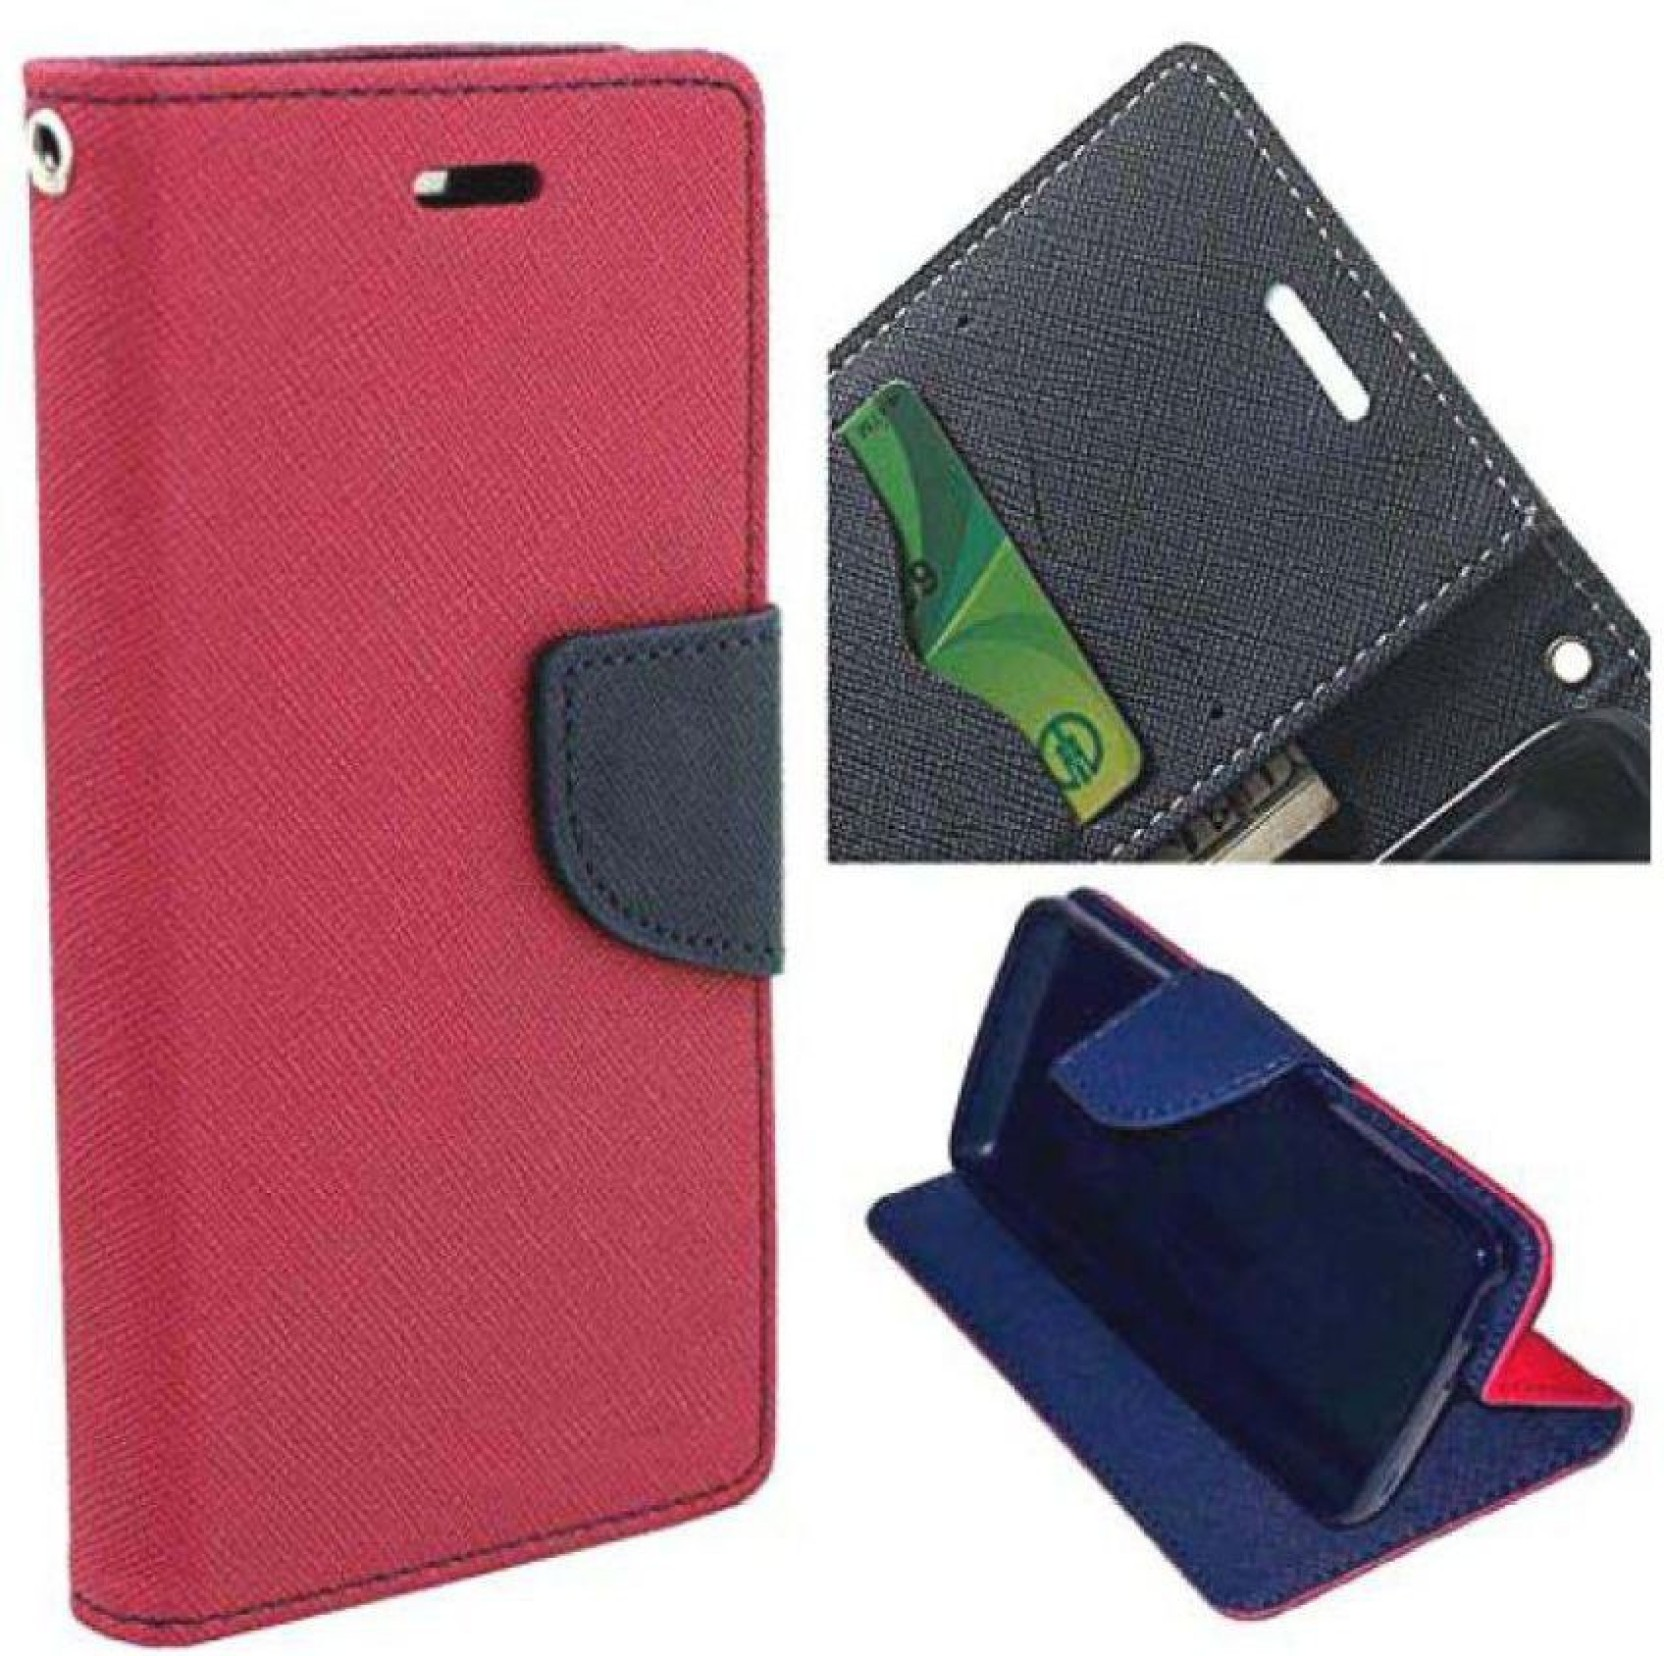 Mercury Goospery Wallet Case Cover For Nokia 6 Xiaomi Note 2 Canvas Diary Red Share